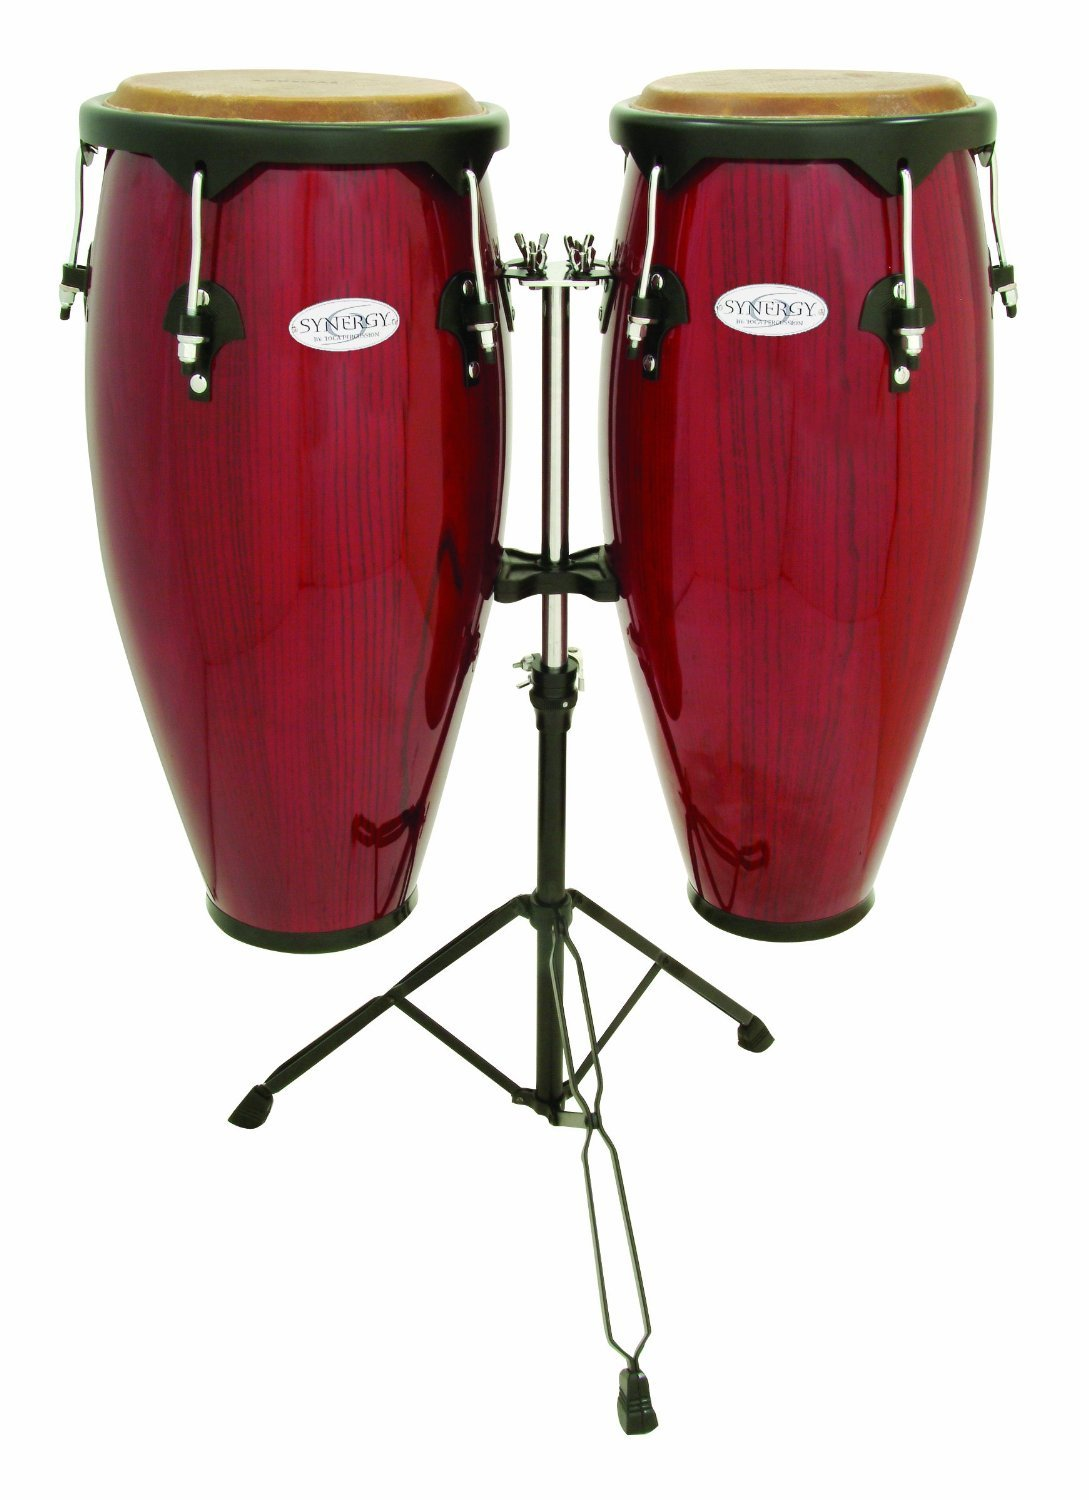 Toca Synergy Wood Conga Set w/ Double Stand - Red